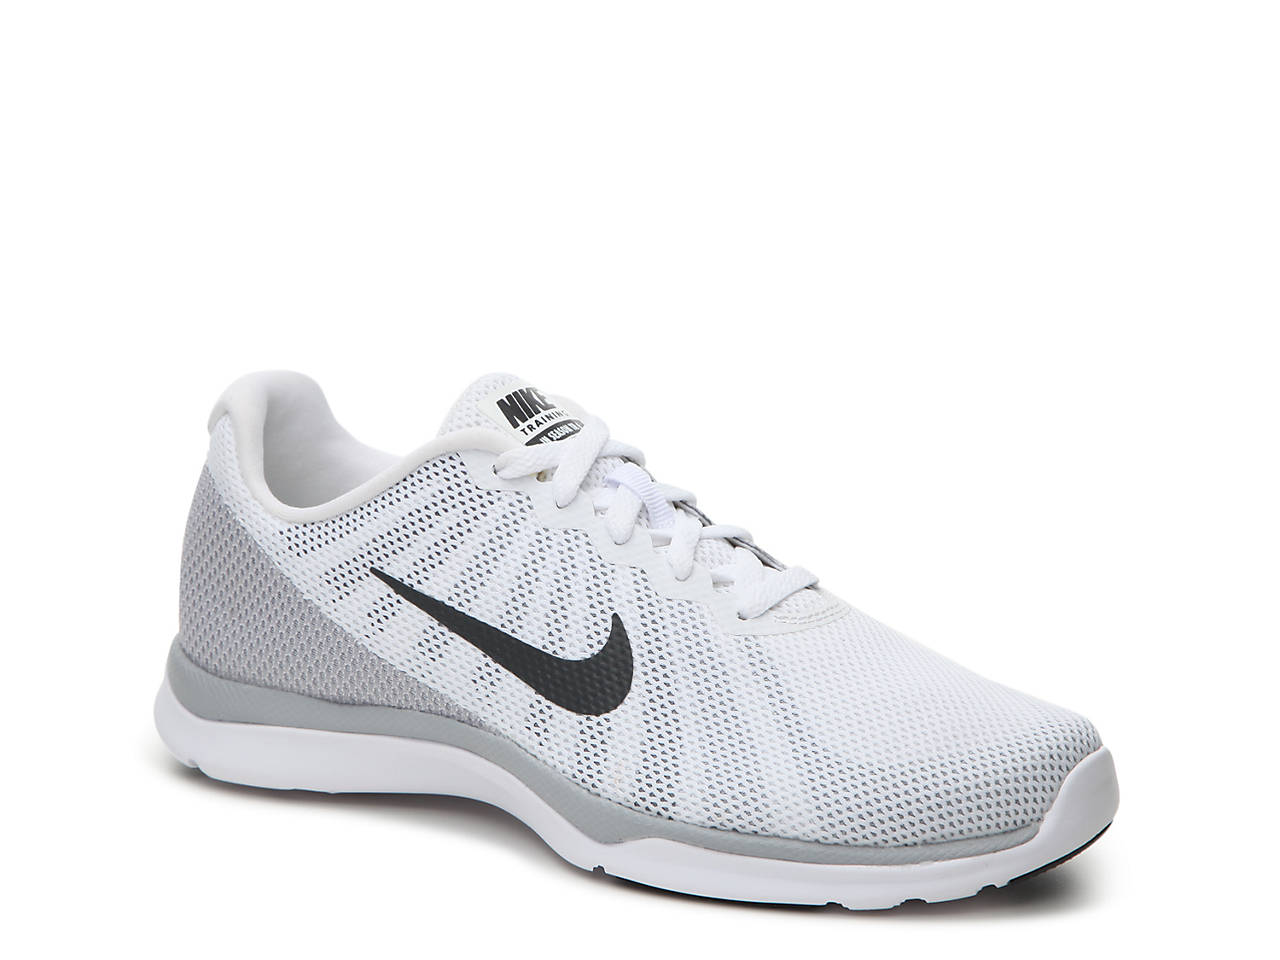 c37e919adafb ... coupon code nike free 5.0 dsw in season tr 6 training shoe womens  varsity complete trainer ...